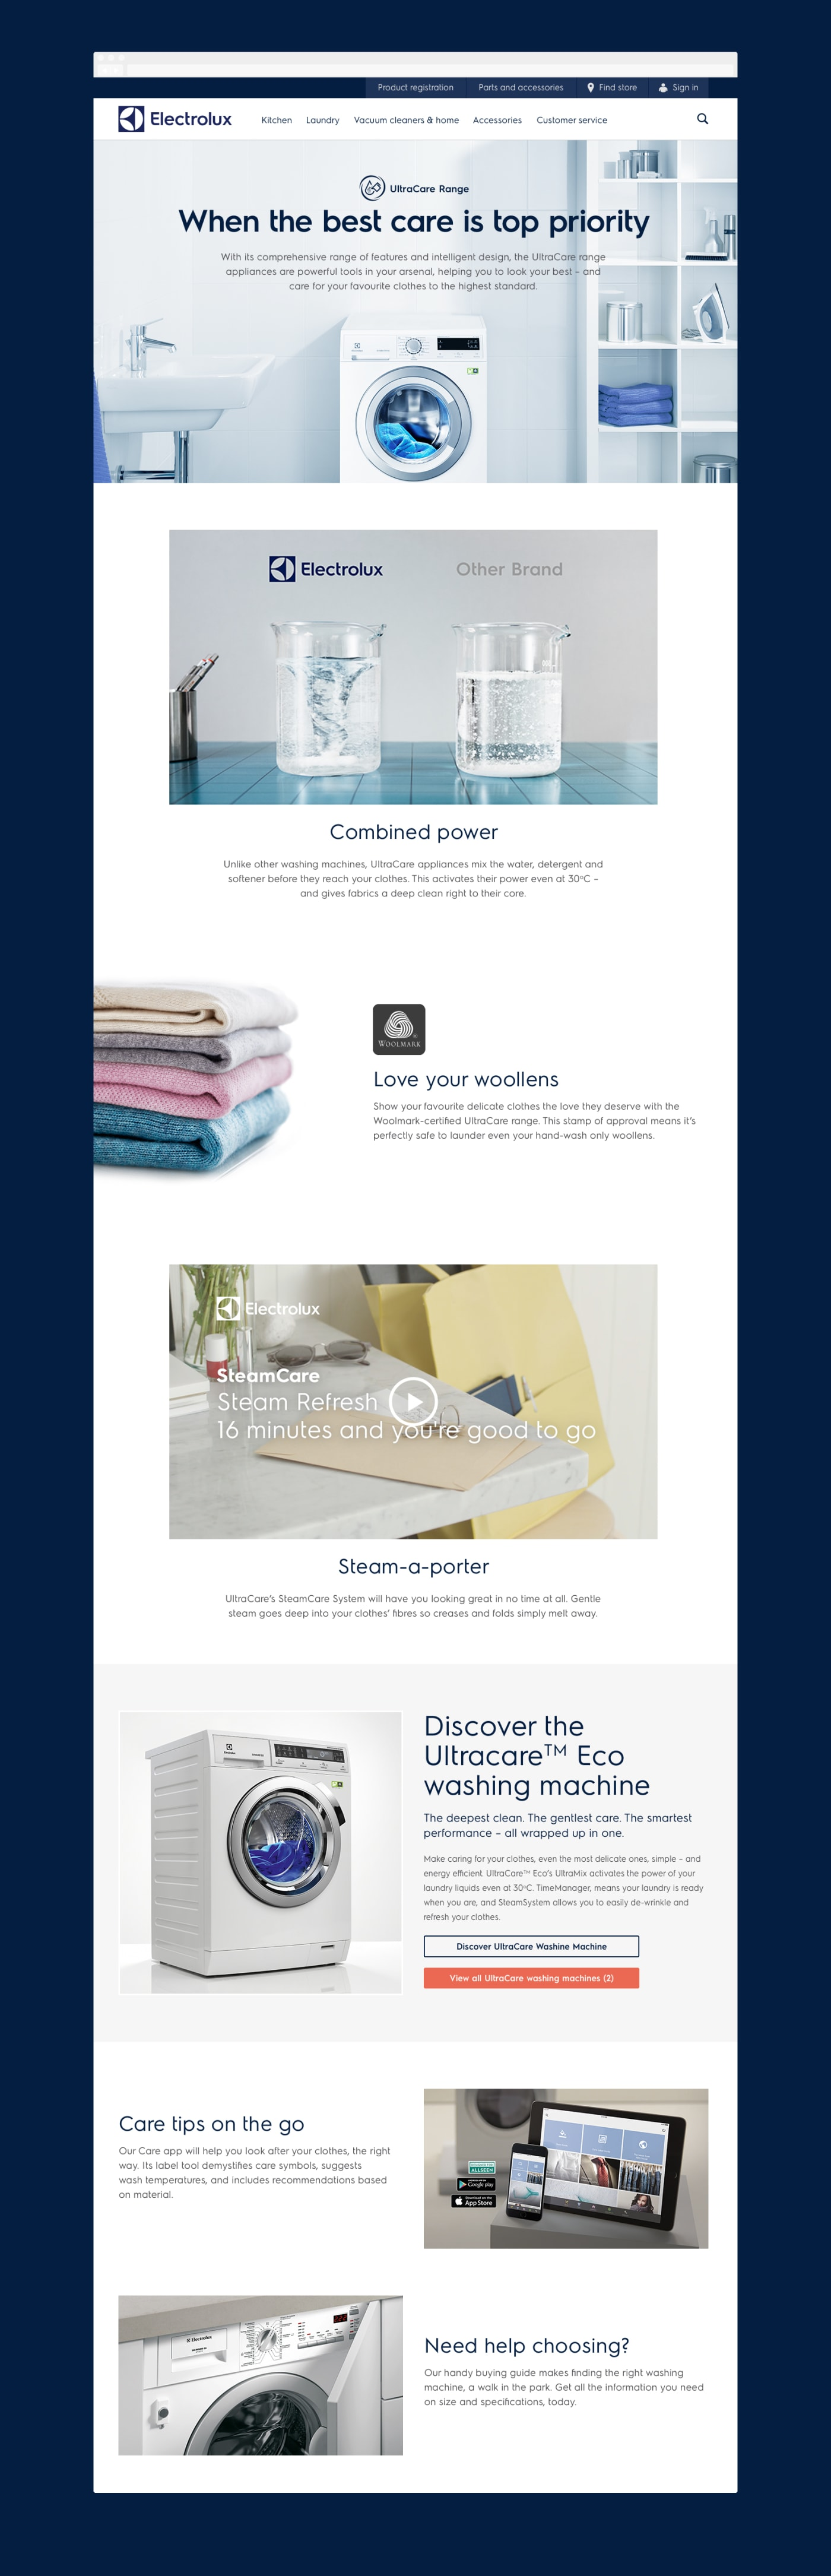 A full view of an image-rich landing screen experience promoting fabric care.